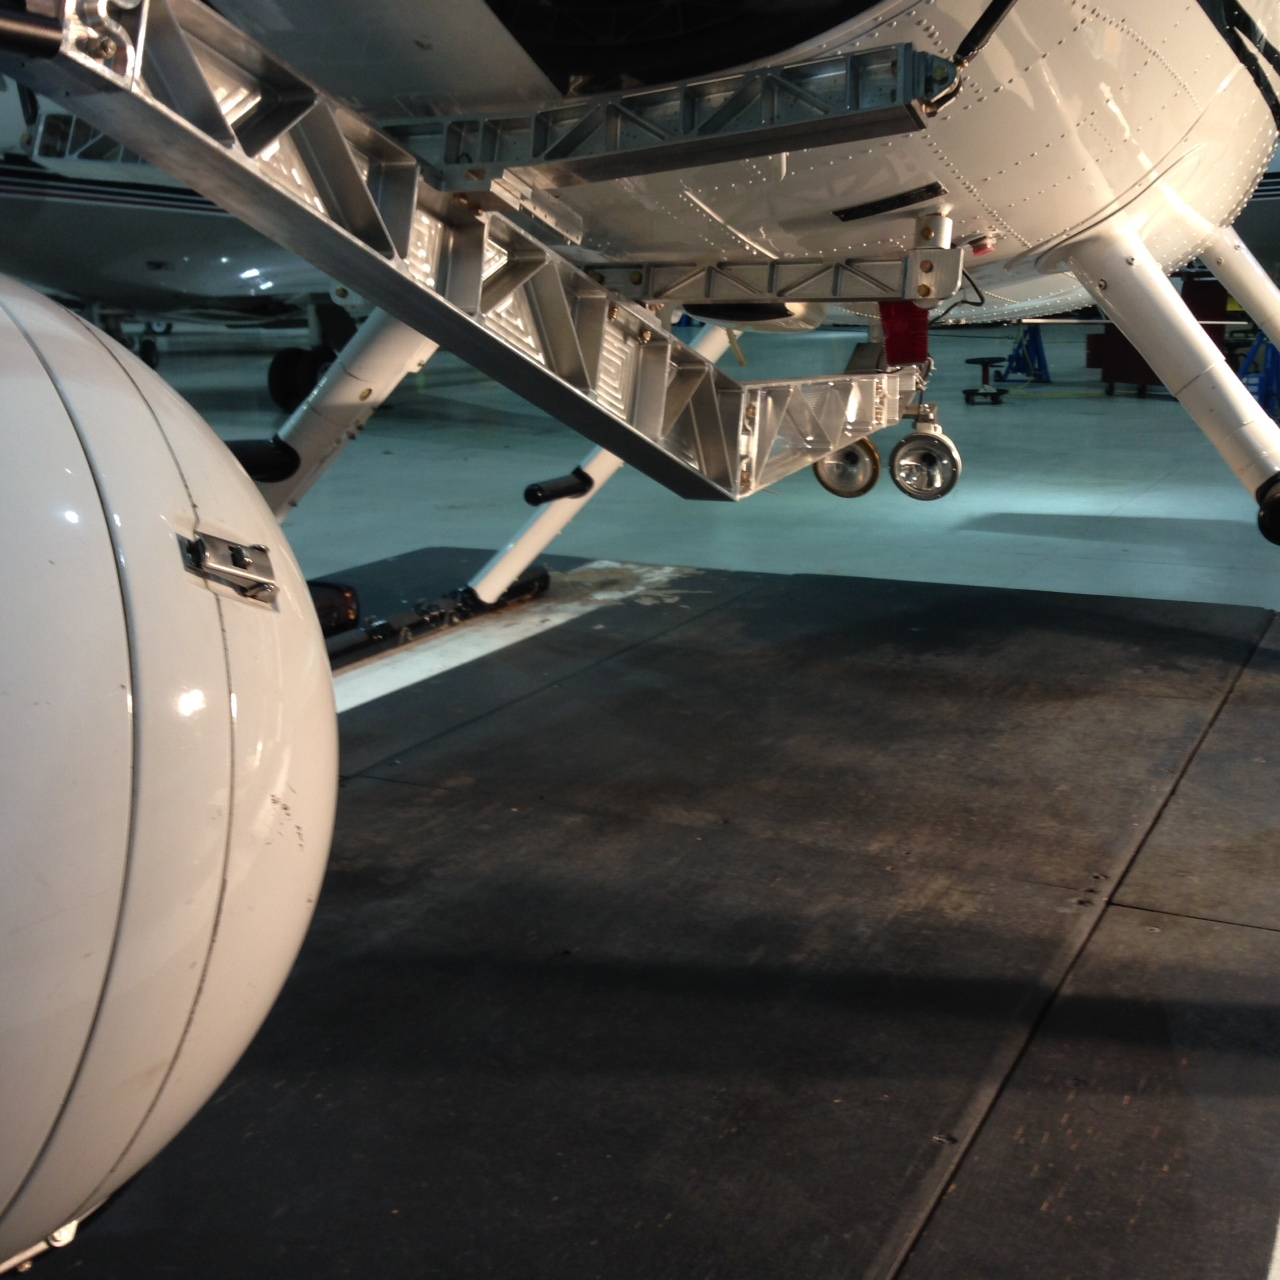 MD500 lights night camera on helicopter